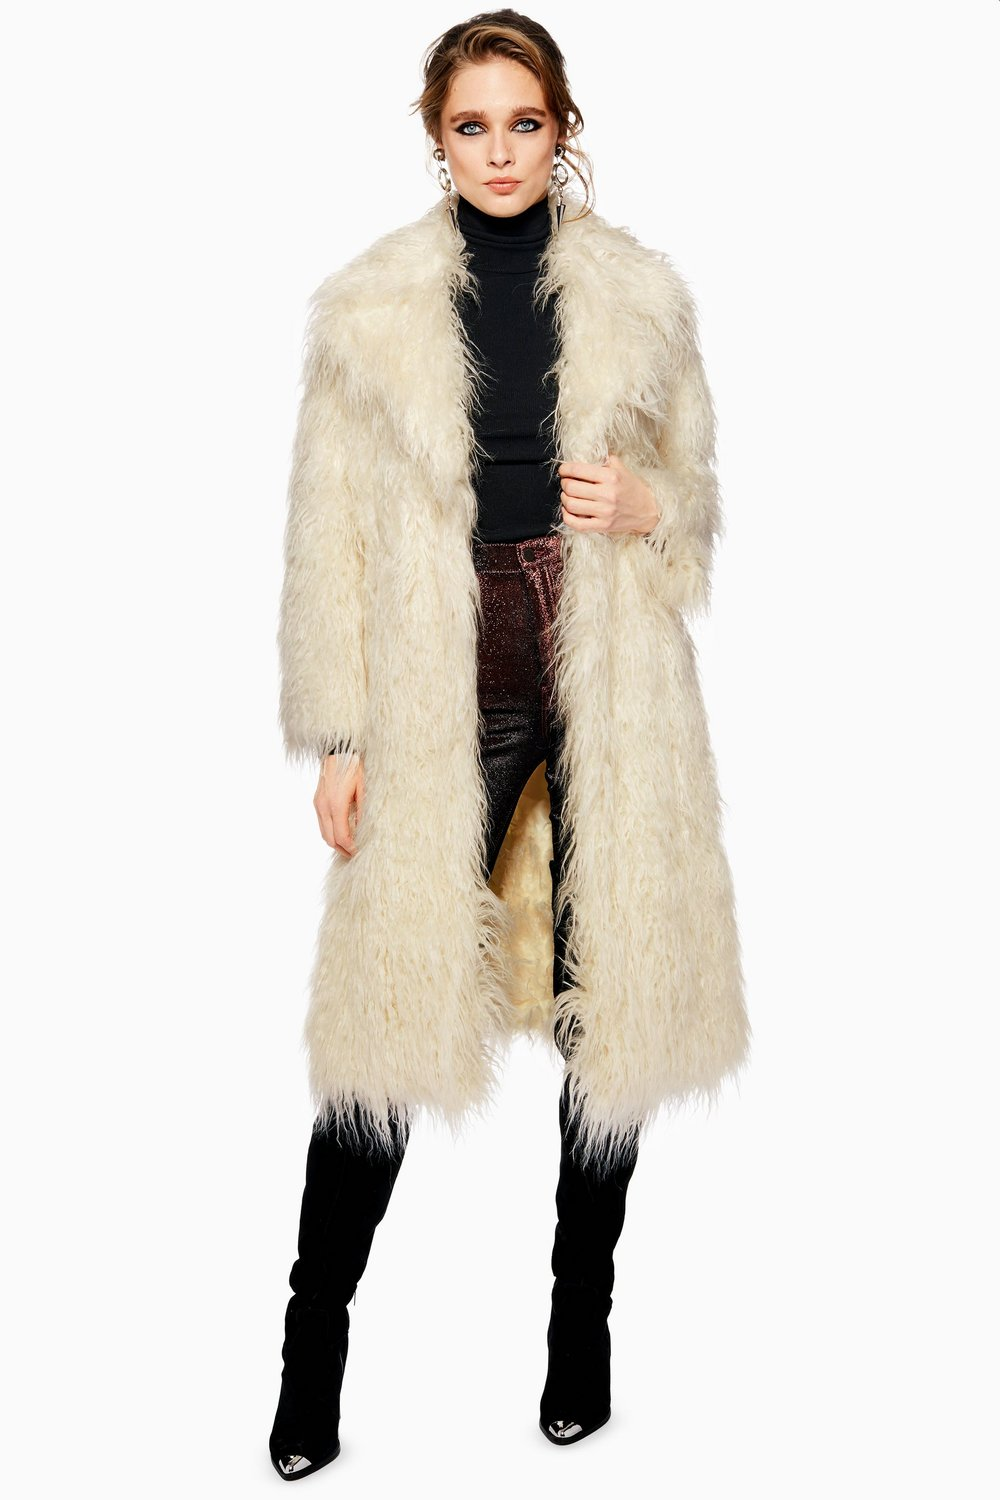 Topshop White Fur Coat.jpg